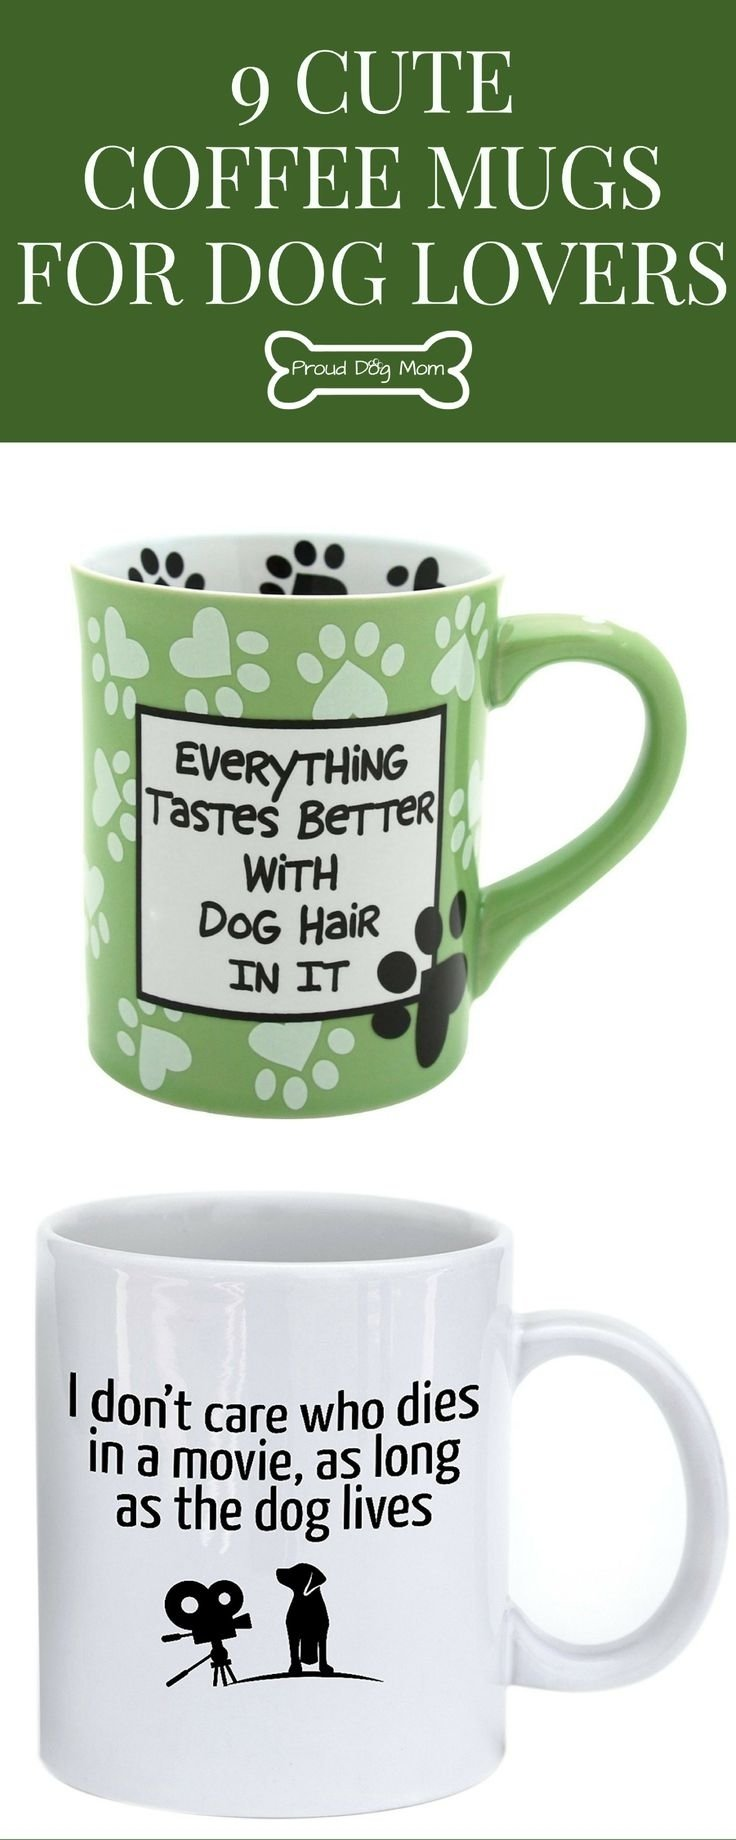 10 Great Gift Ideas For Animal Lovers 491 best dog products gifts and diy images on pinterest dog 1 2020